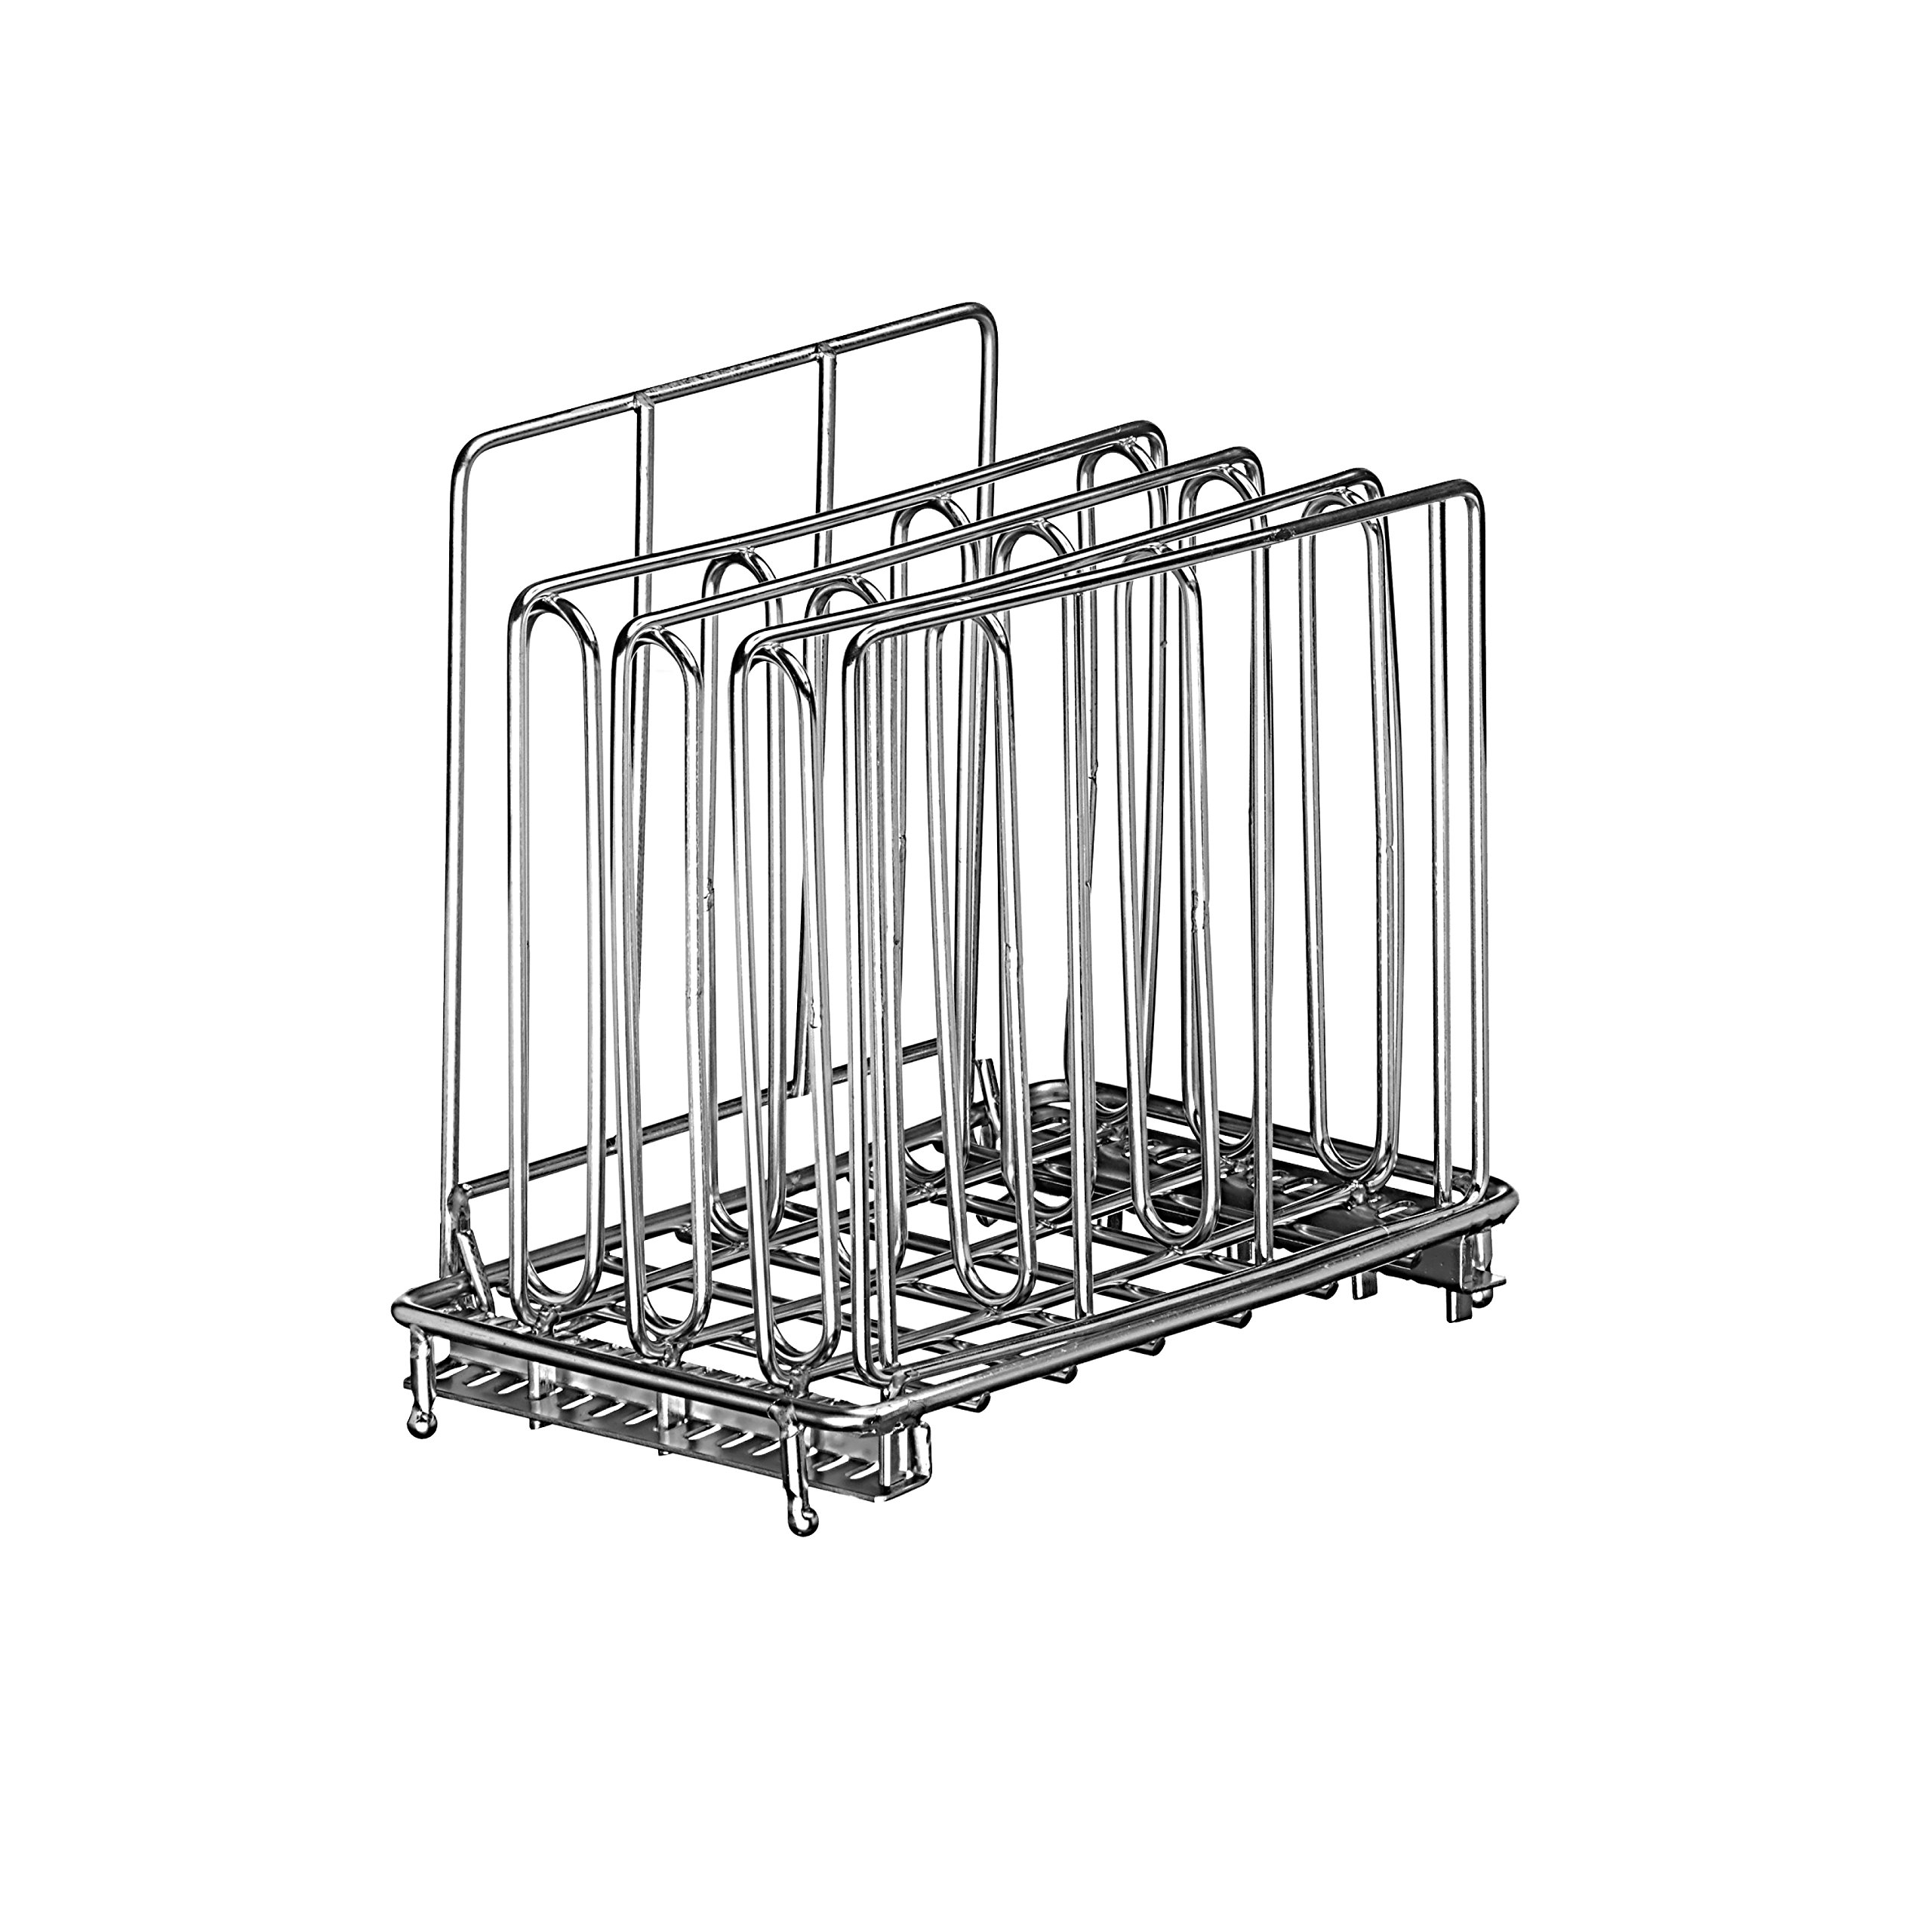 LIPAVI Sous Vide Rack - Model L5 - Marine Quality 316L Stainless Steel - Square 4 x 6.4 Inch - Adjustable, Collapsible, Ensures even and Quick warming - Fits LIPAVI C5 Container by LIPAVI